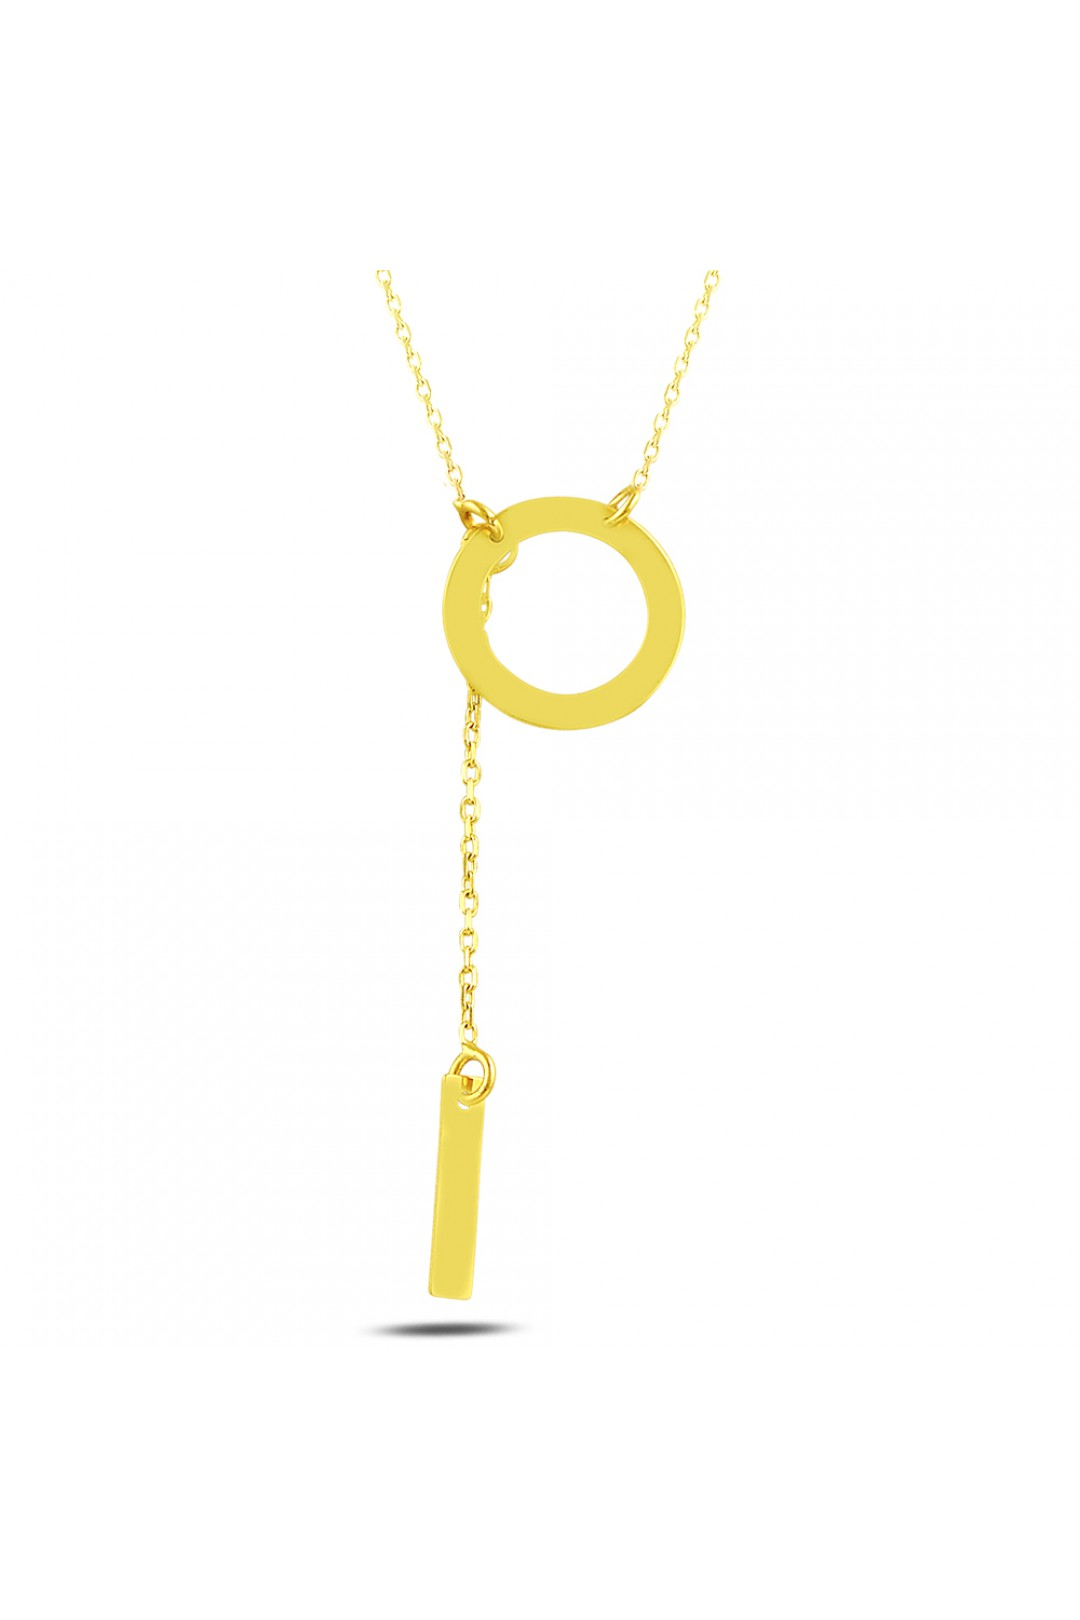 ROUND AND STICK NECKLACE